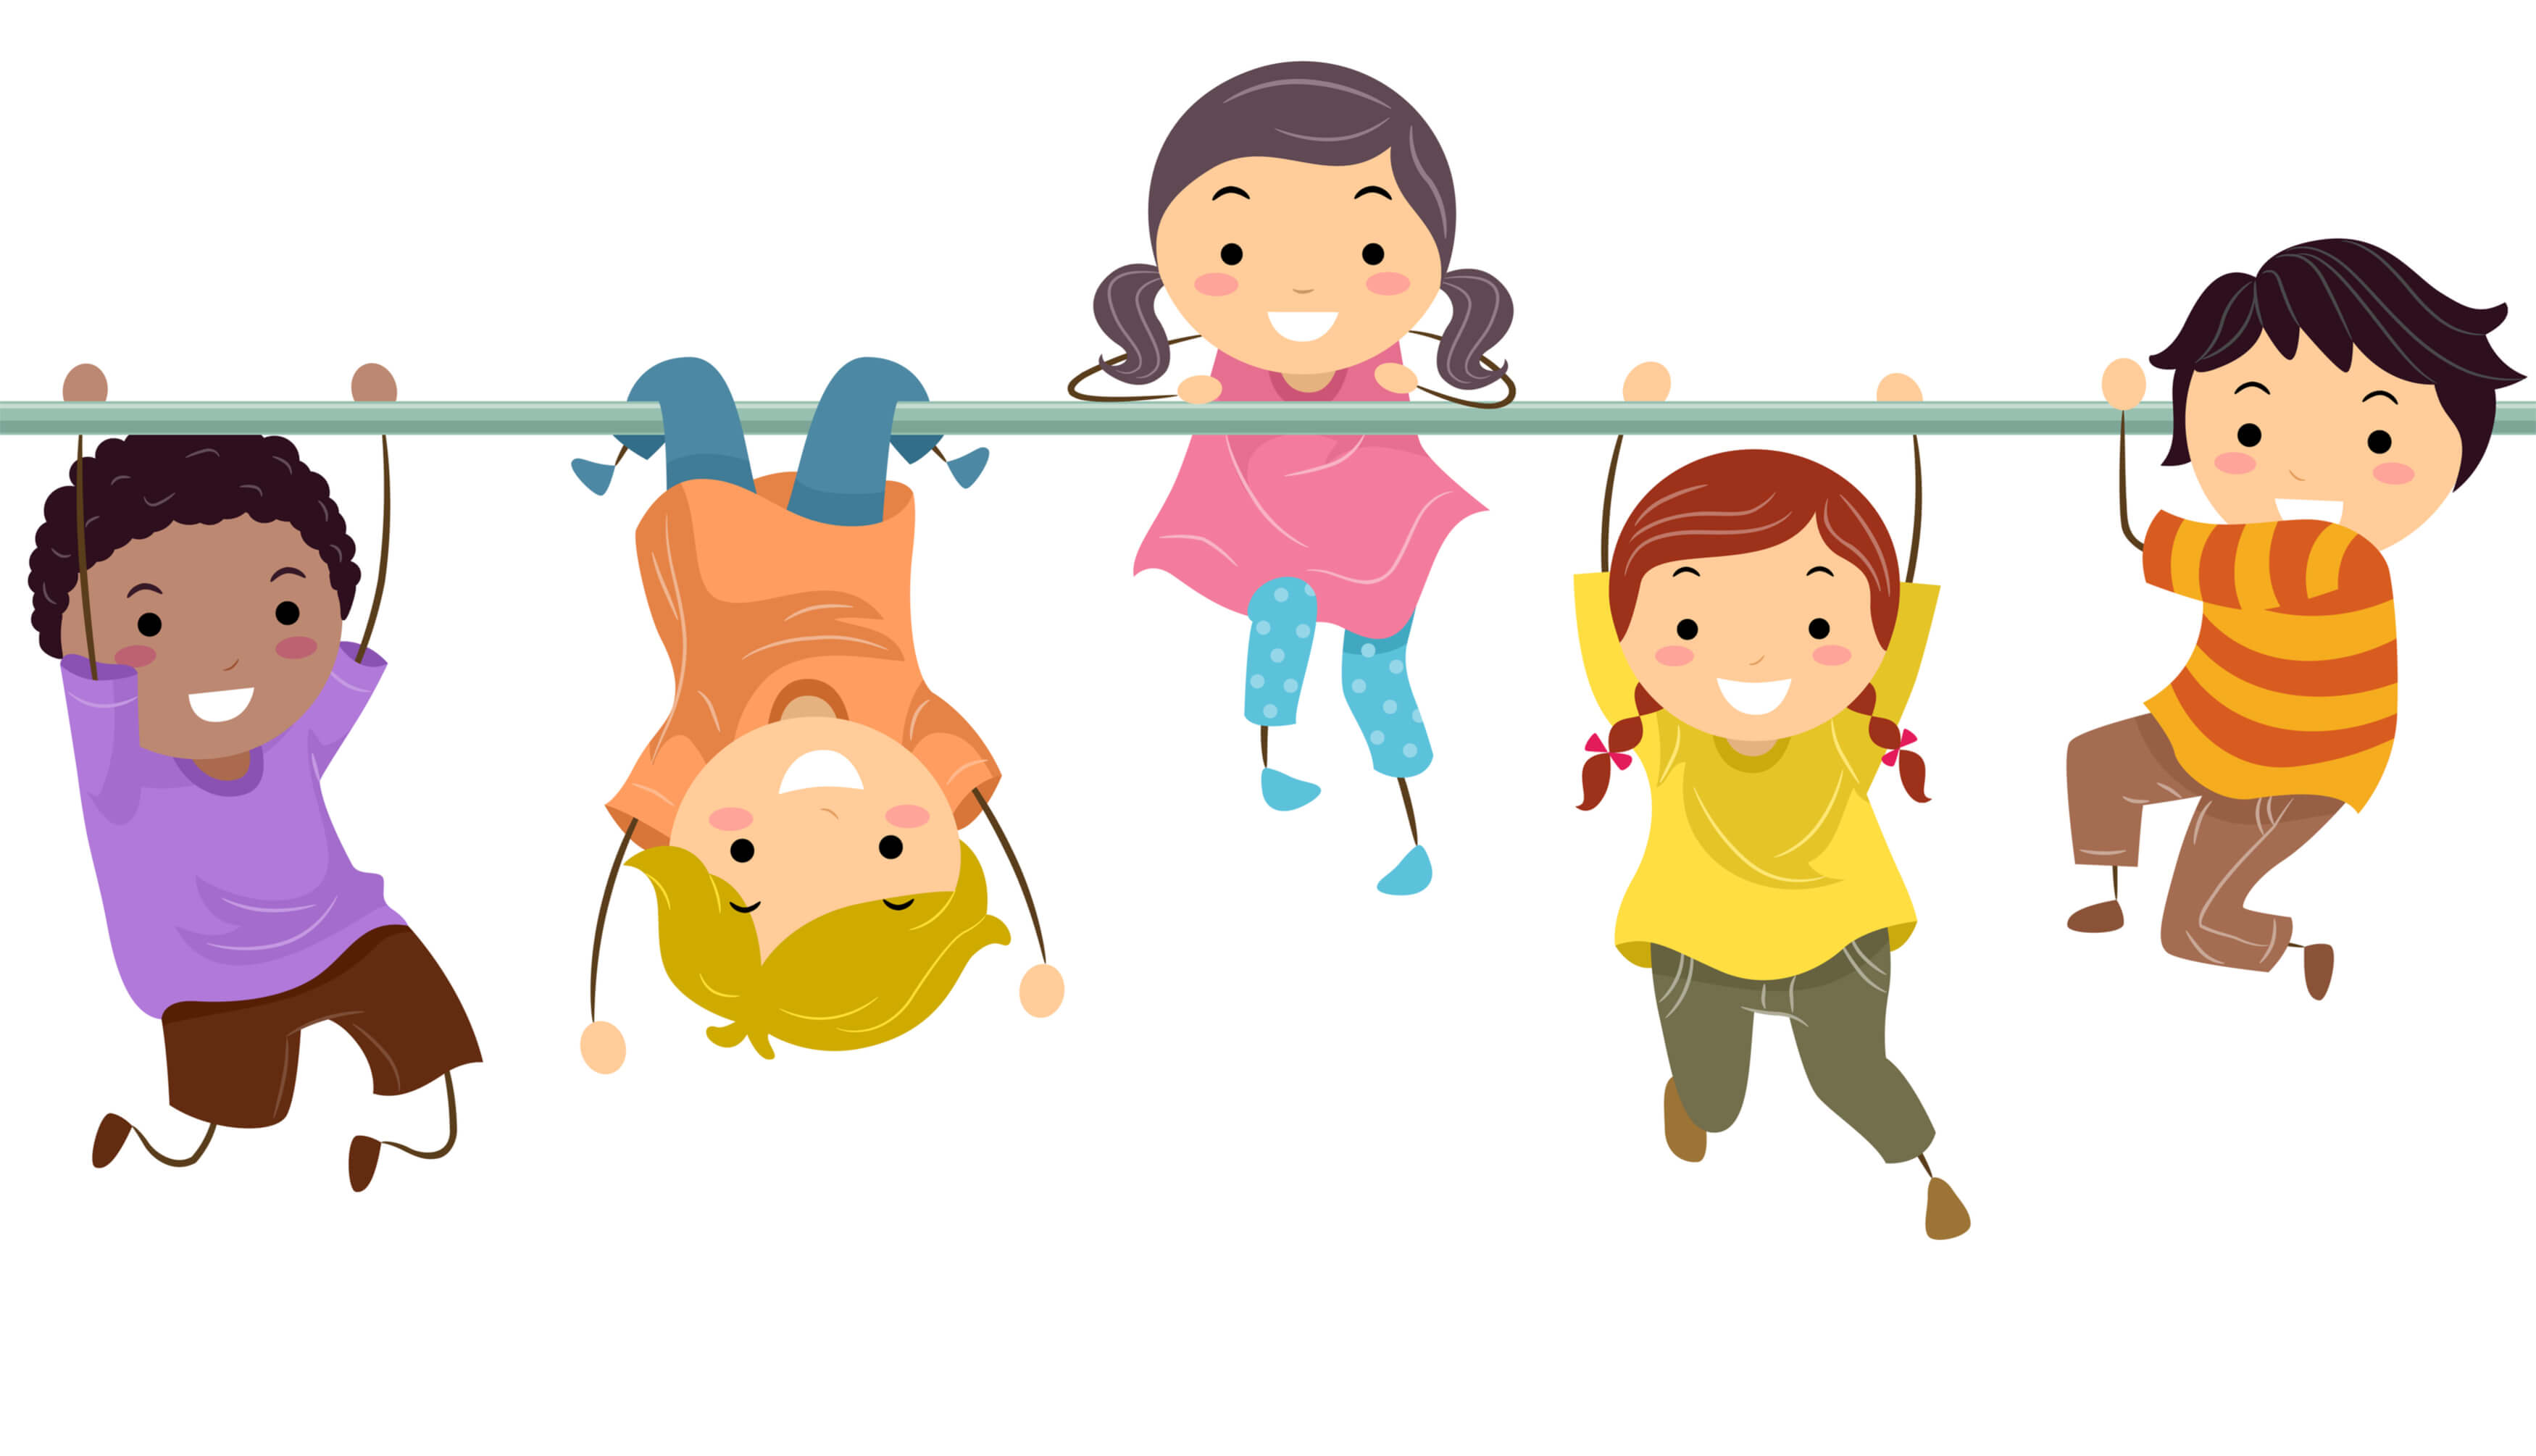 Exercise clipart physical activity. In children symmetry physiotherapy